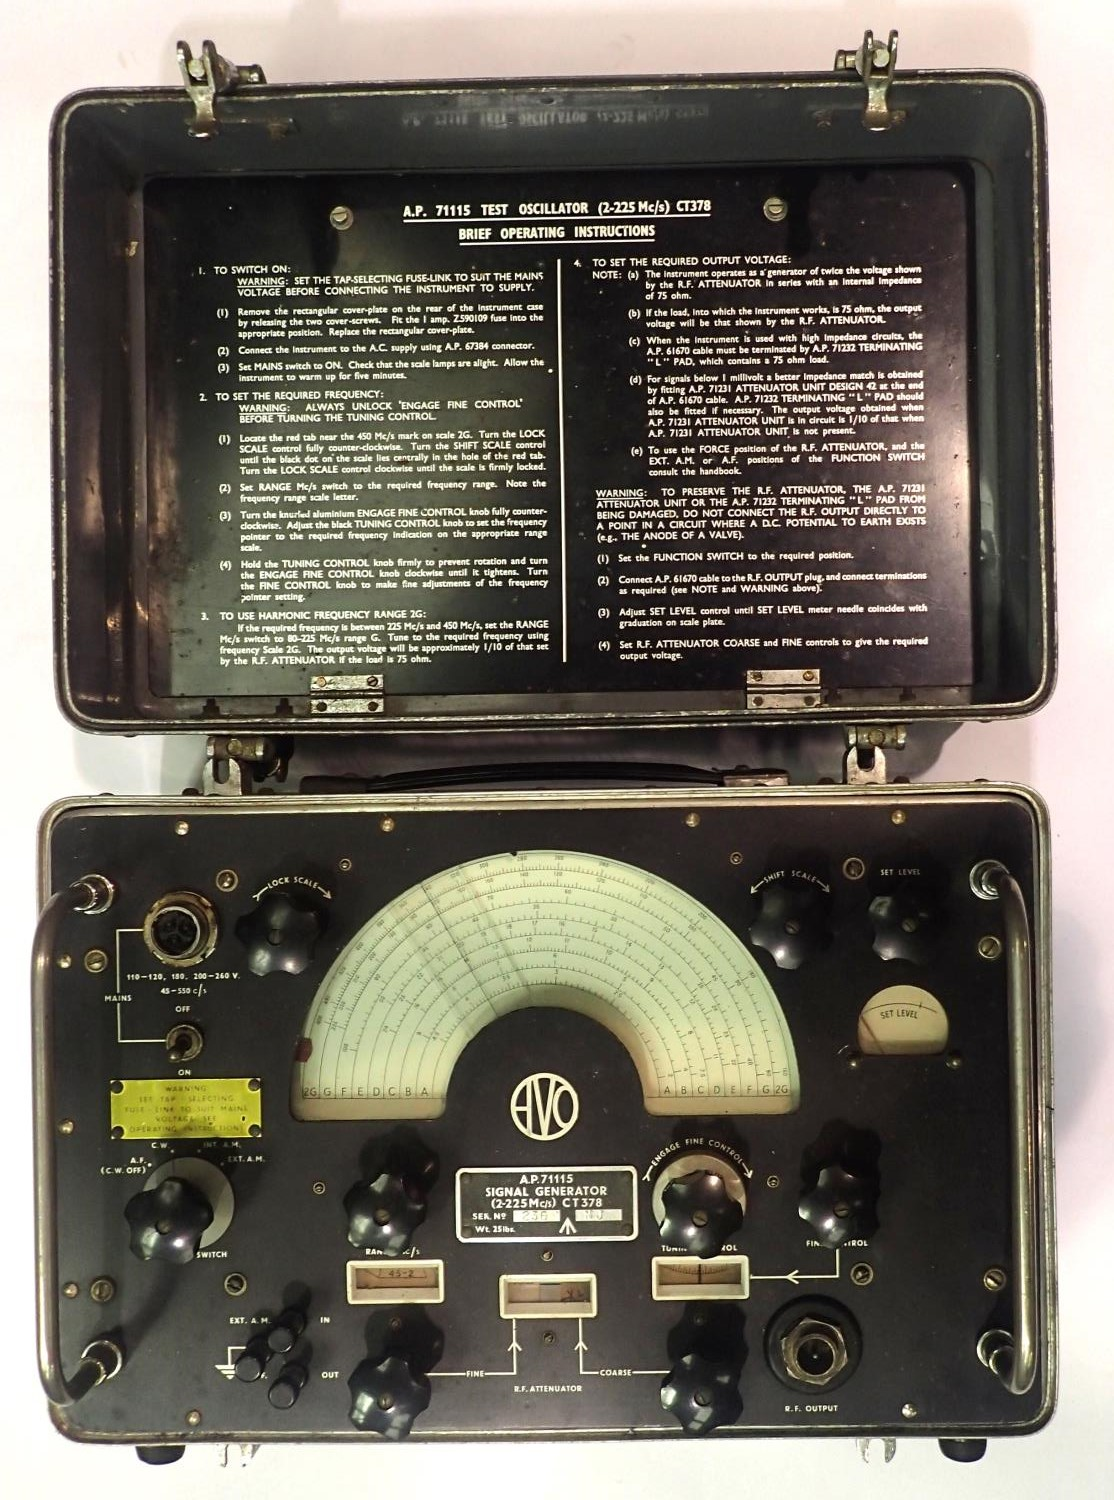 AVO A.P.71115 military spec Signal Generator. Not available for in-house P&P, contact Paul O'Hea